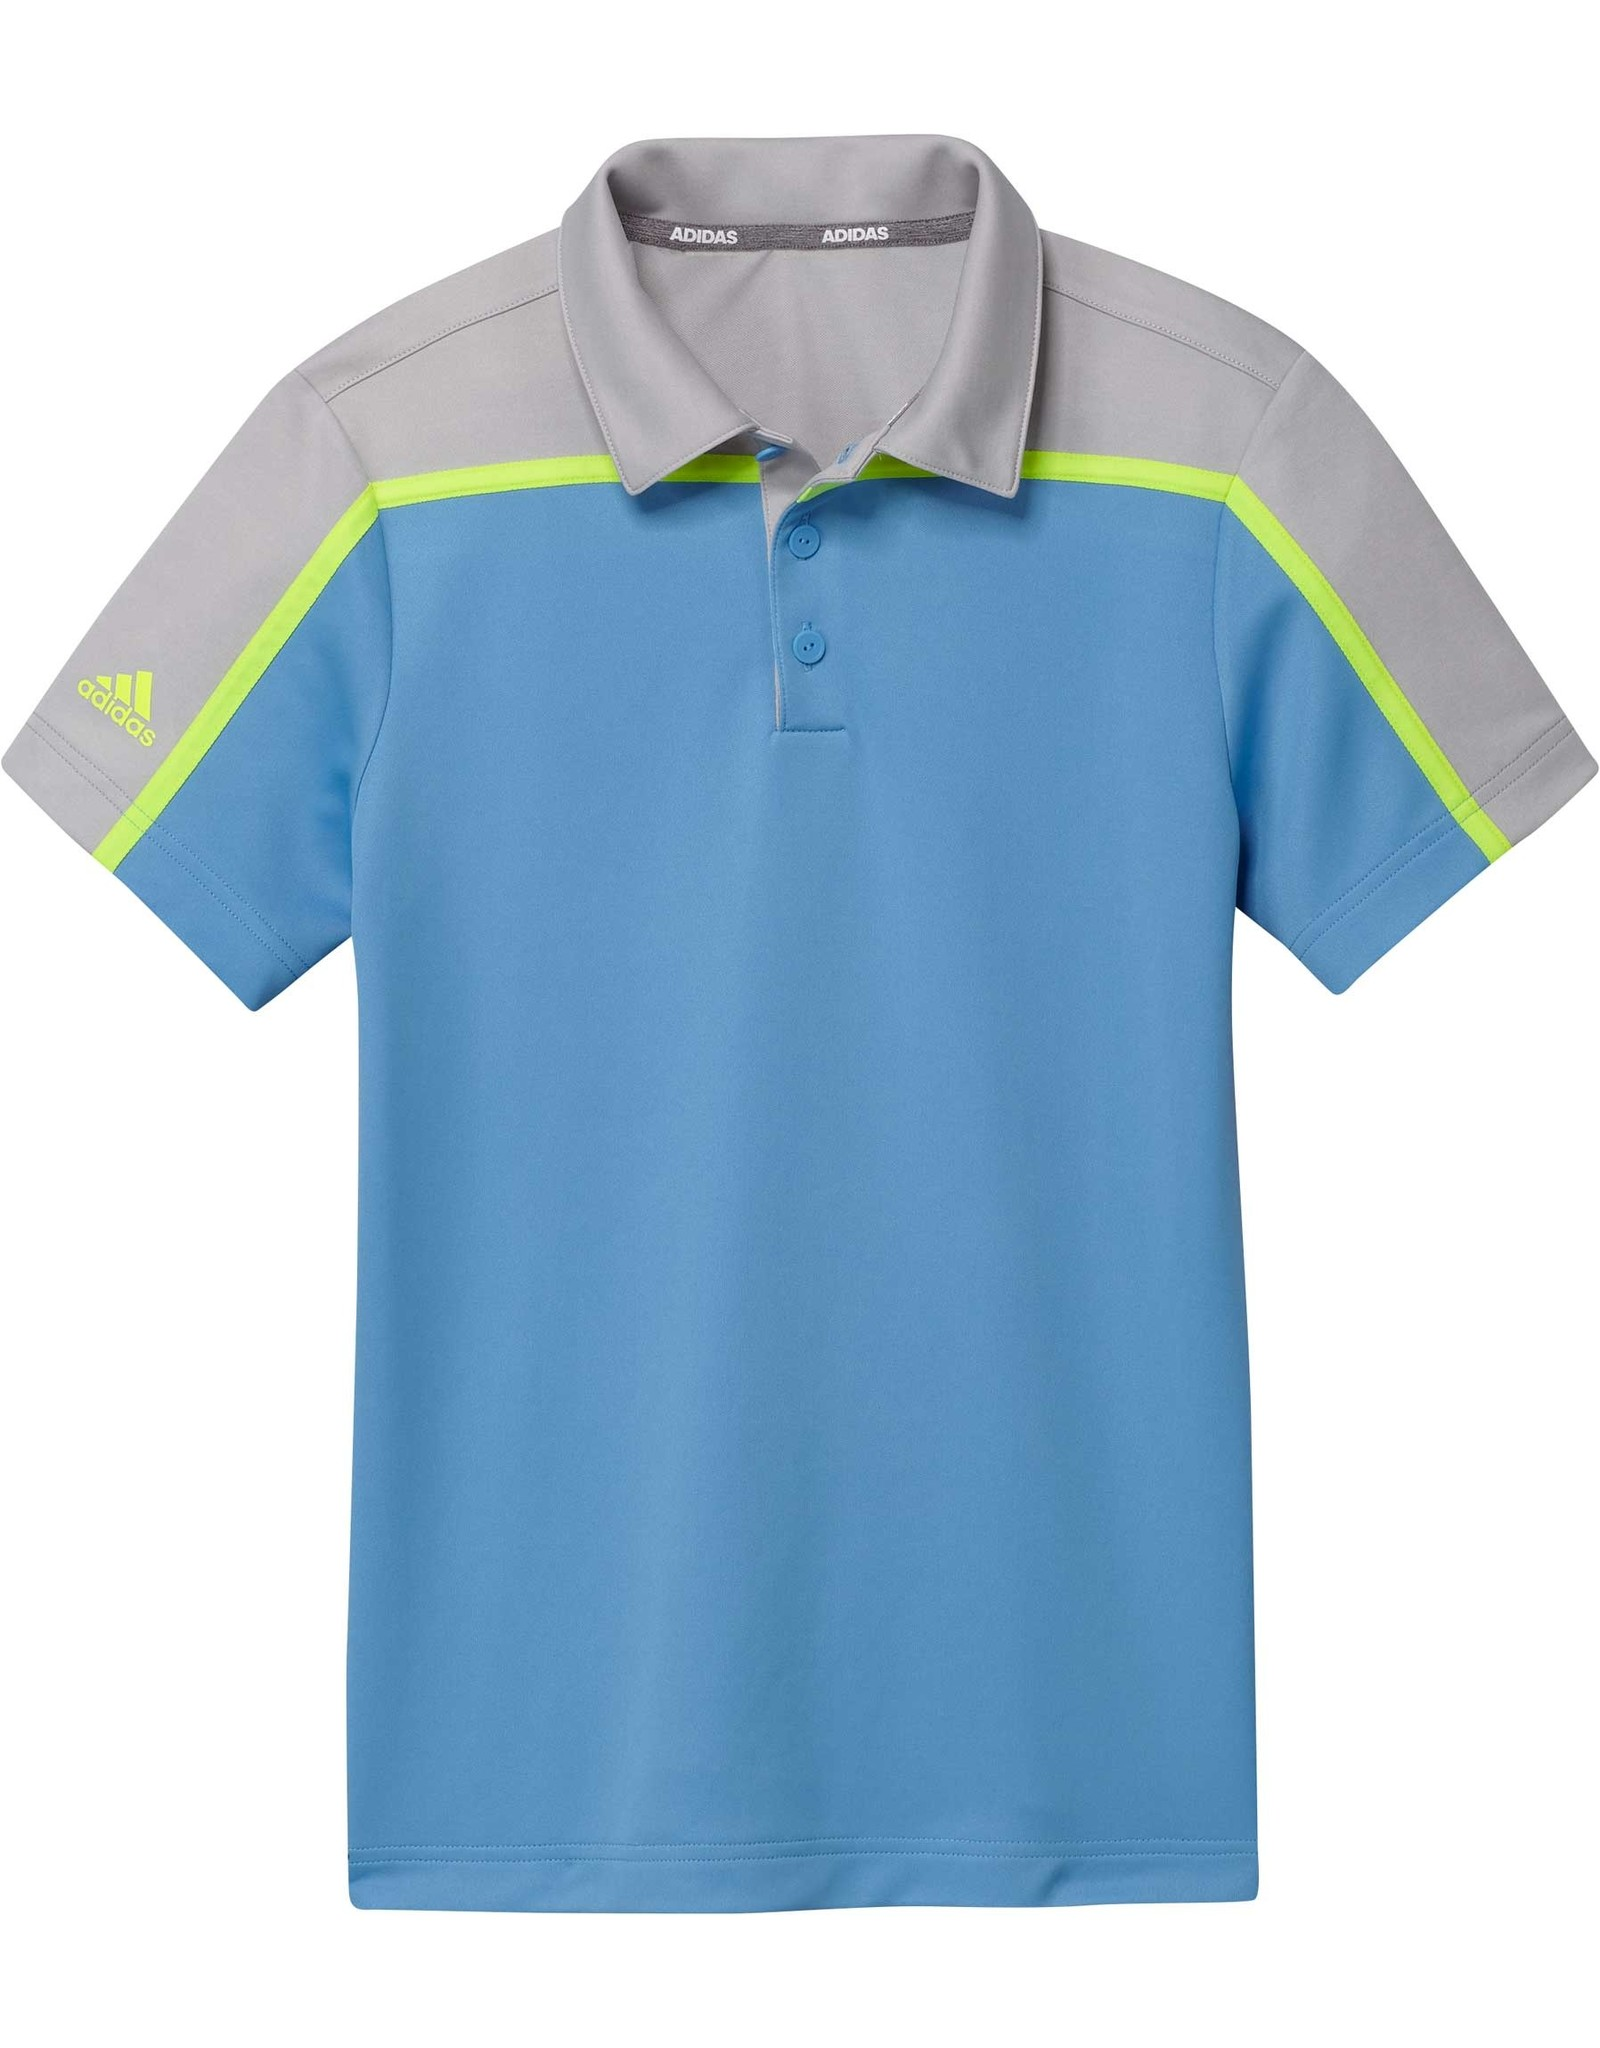 Adidas ADIDAS YOUTH POLO (FI8714) M